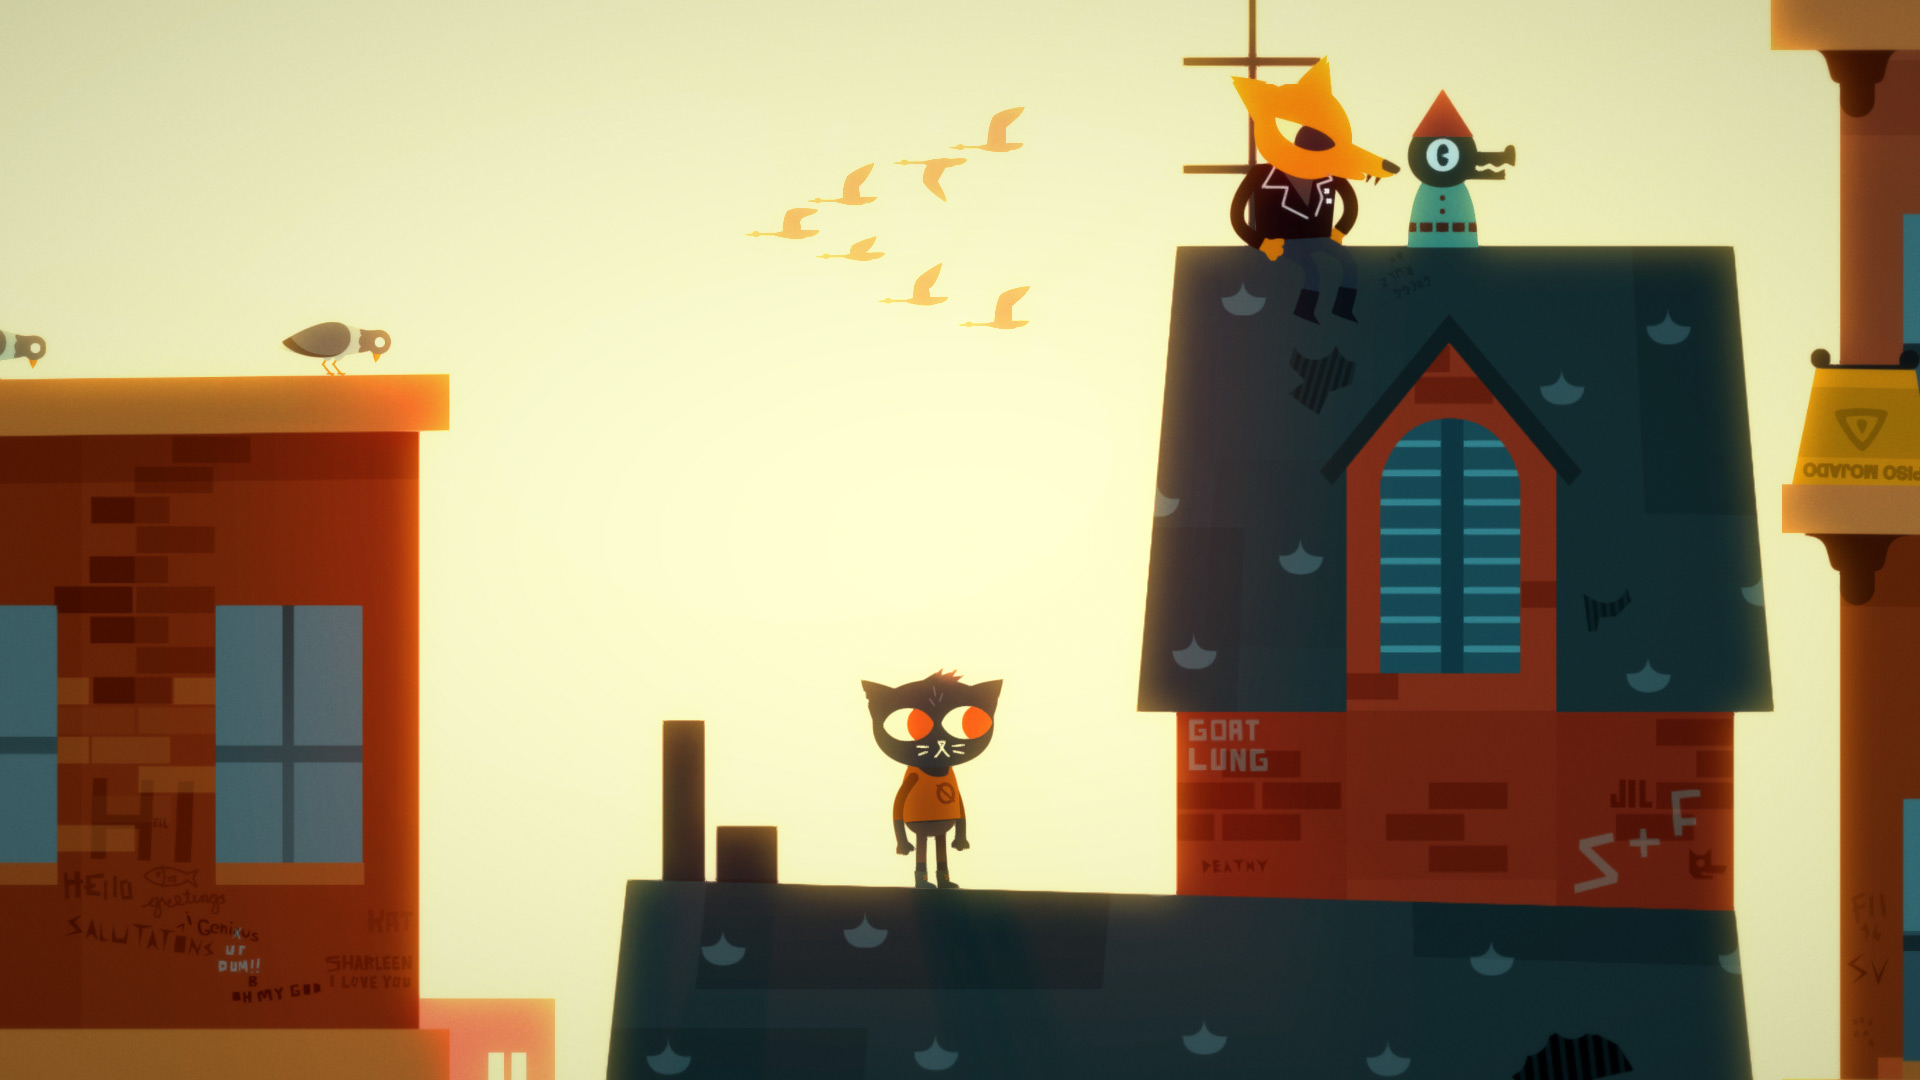 5 Games Bravely Dealing With Mental Health Issues